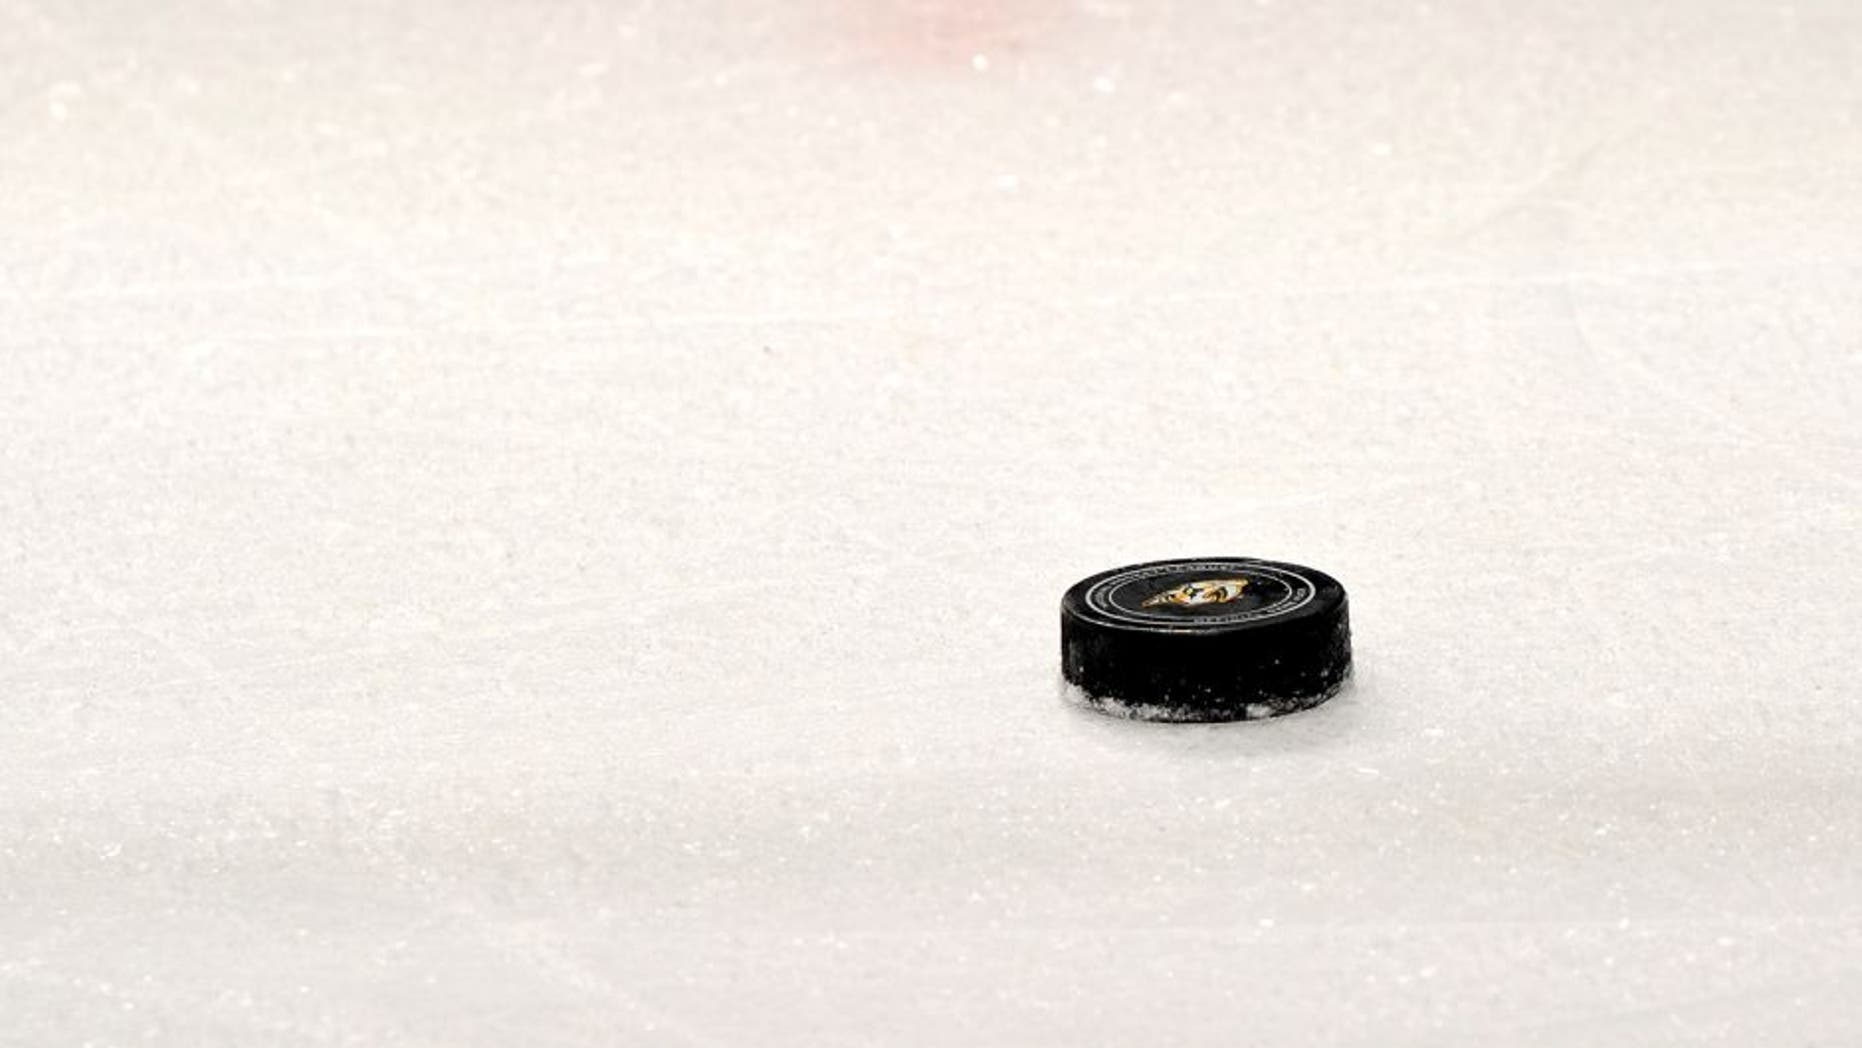 NASHVILLE, TN - MARCH 01: A Nashville Predators game puck rests on the ice during a game against the Winnipeg Jets at Bridgestone Arena on March 1, 2014 in Nashville, Tennessee. (Photo by Frederick Breedon/Getty Images)